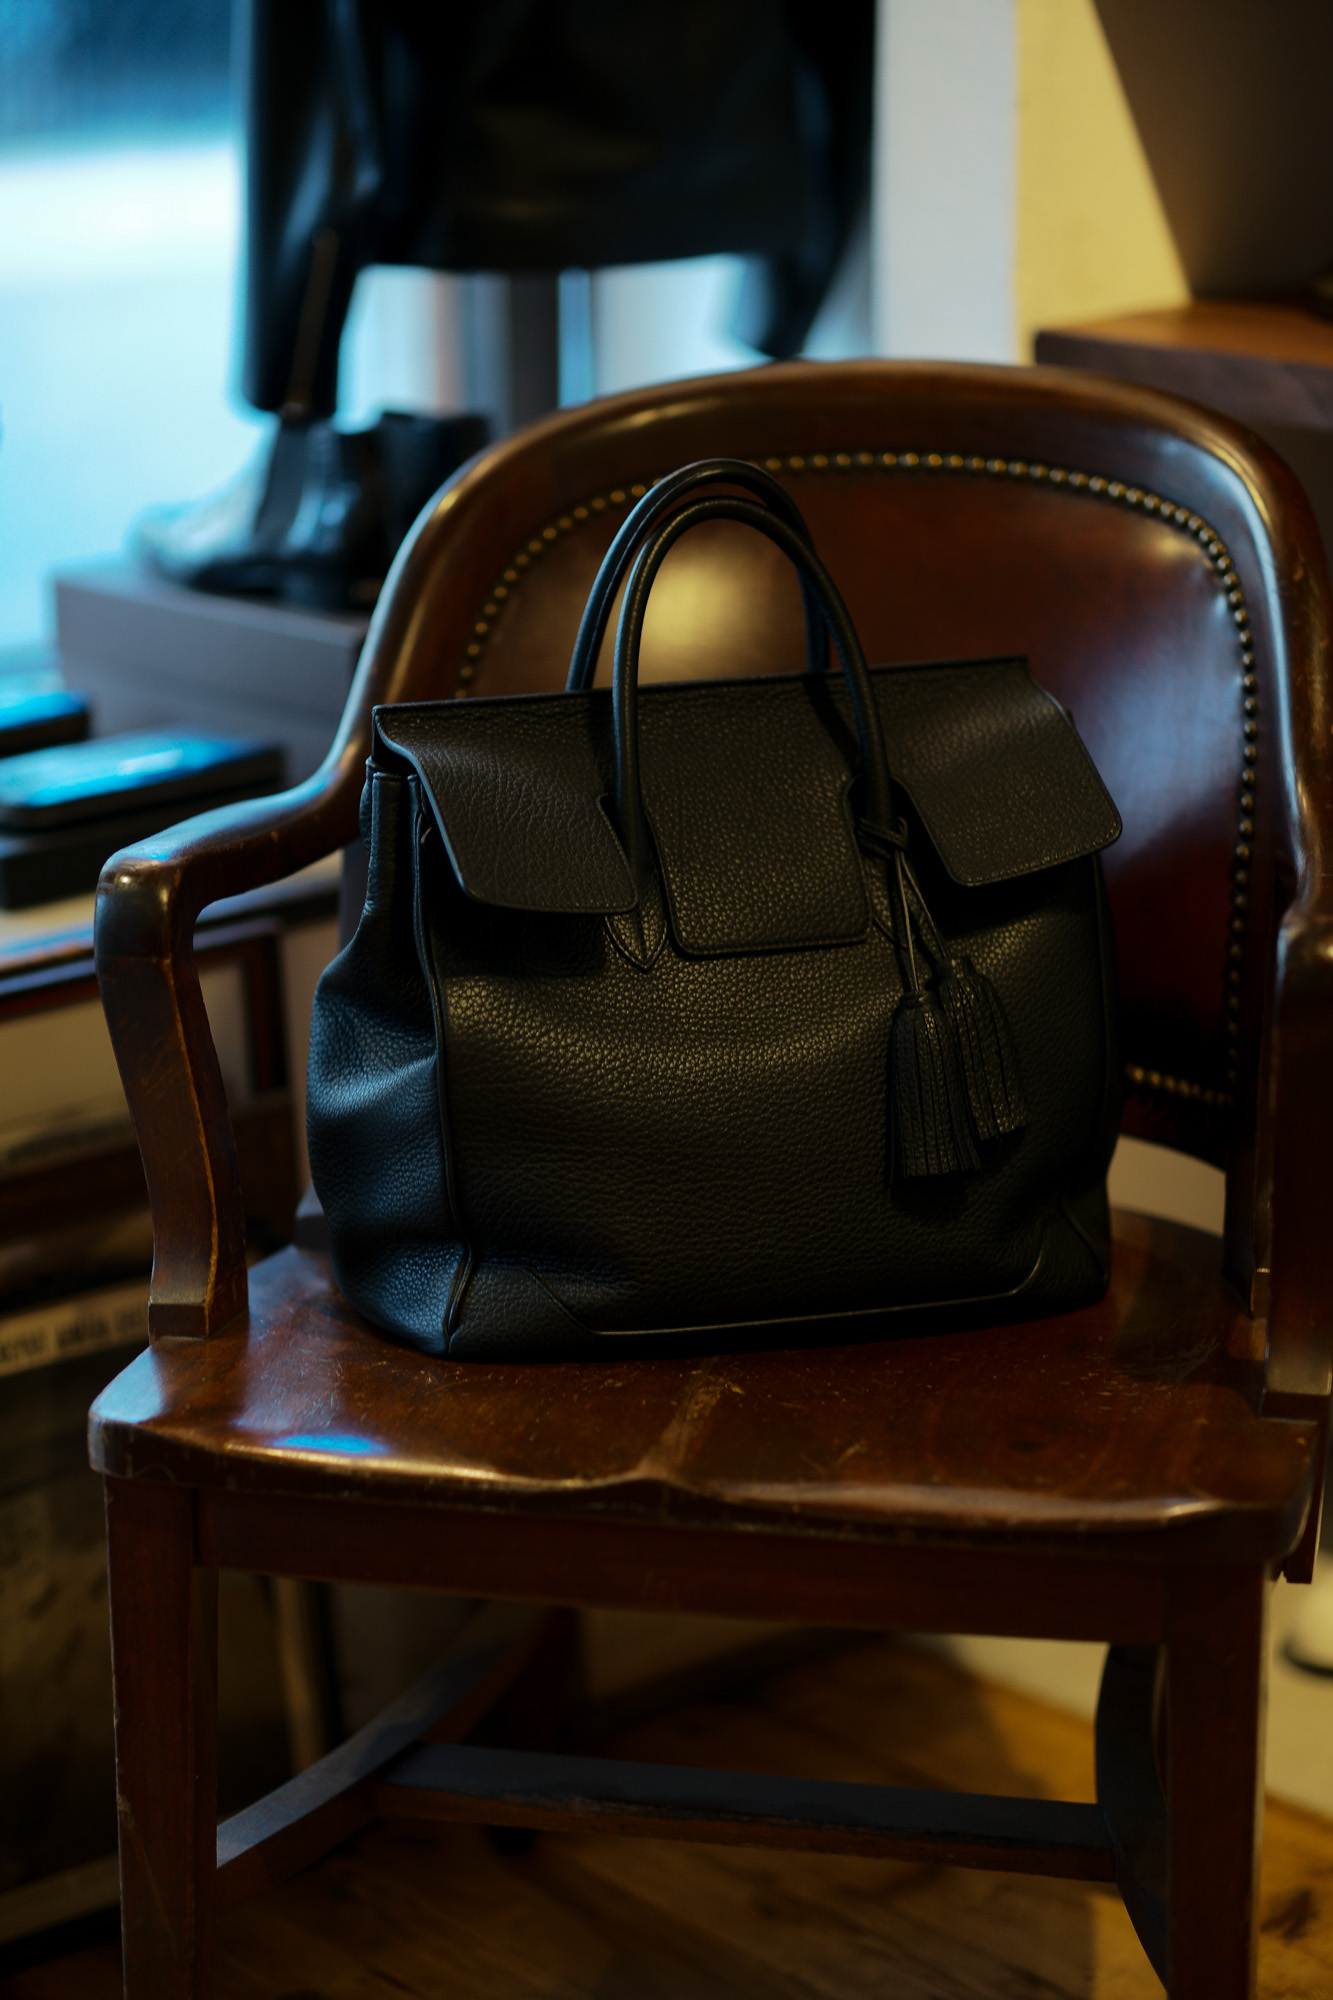 ACATE × cuervo bopoha アカーテ × クエルボ ヴァローナ GHIBLI ギブリ Montblanc leather モンブランレザー トートバッグ レザーバッグ NERO ネロ MADE IN ITALY イタリア製 2020 AW Special Special Special Model 愛知 名古屋 altoediritto アルトエデリット レザーバック コラボレーション Wネーム